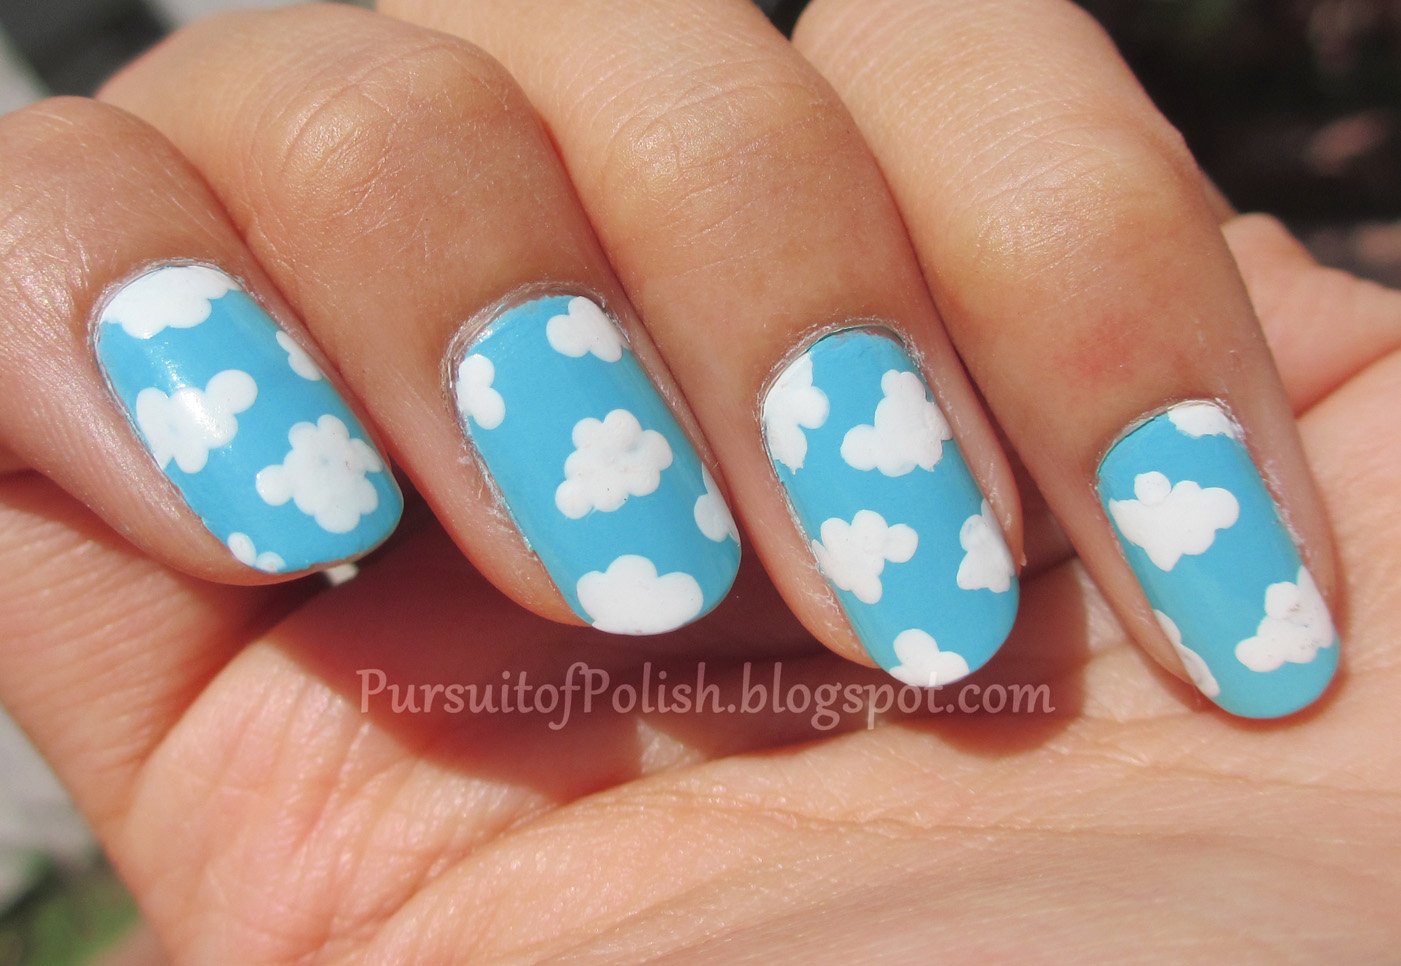 In pursuit of polish ez pz fluffy clouds nail art - Simple nail polish designs at home ...